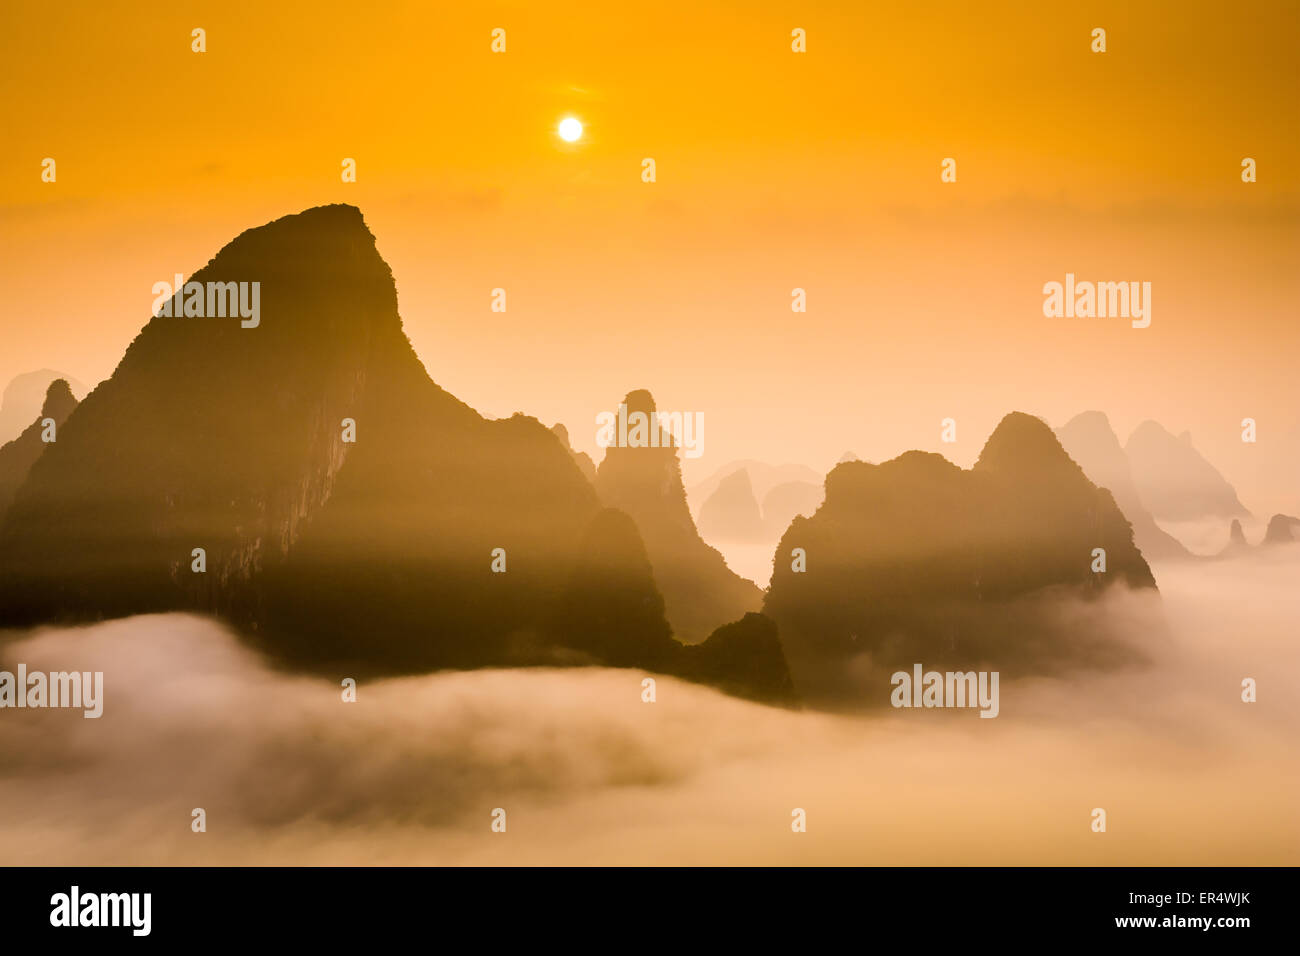 Karst Mountaintops in Guilin, China. - Stock Image